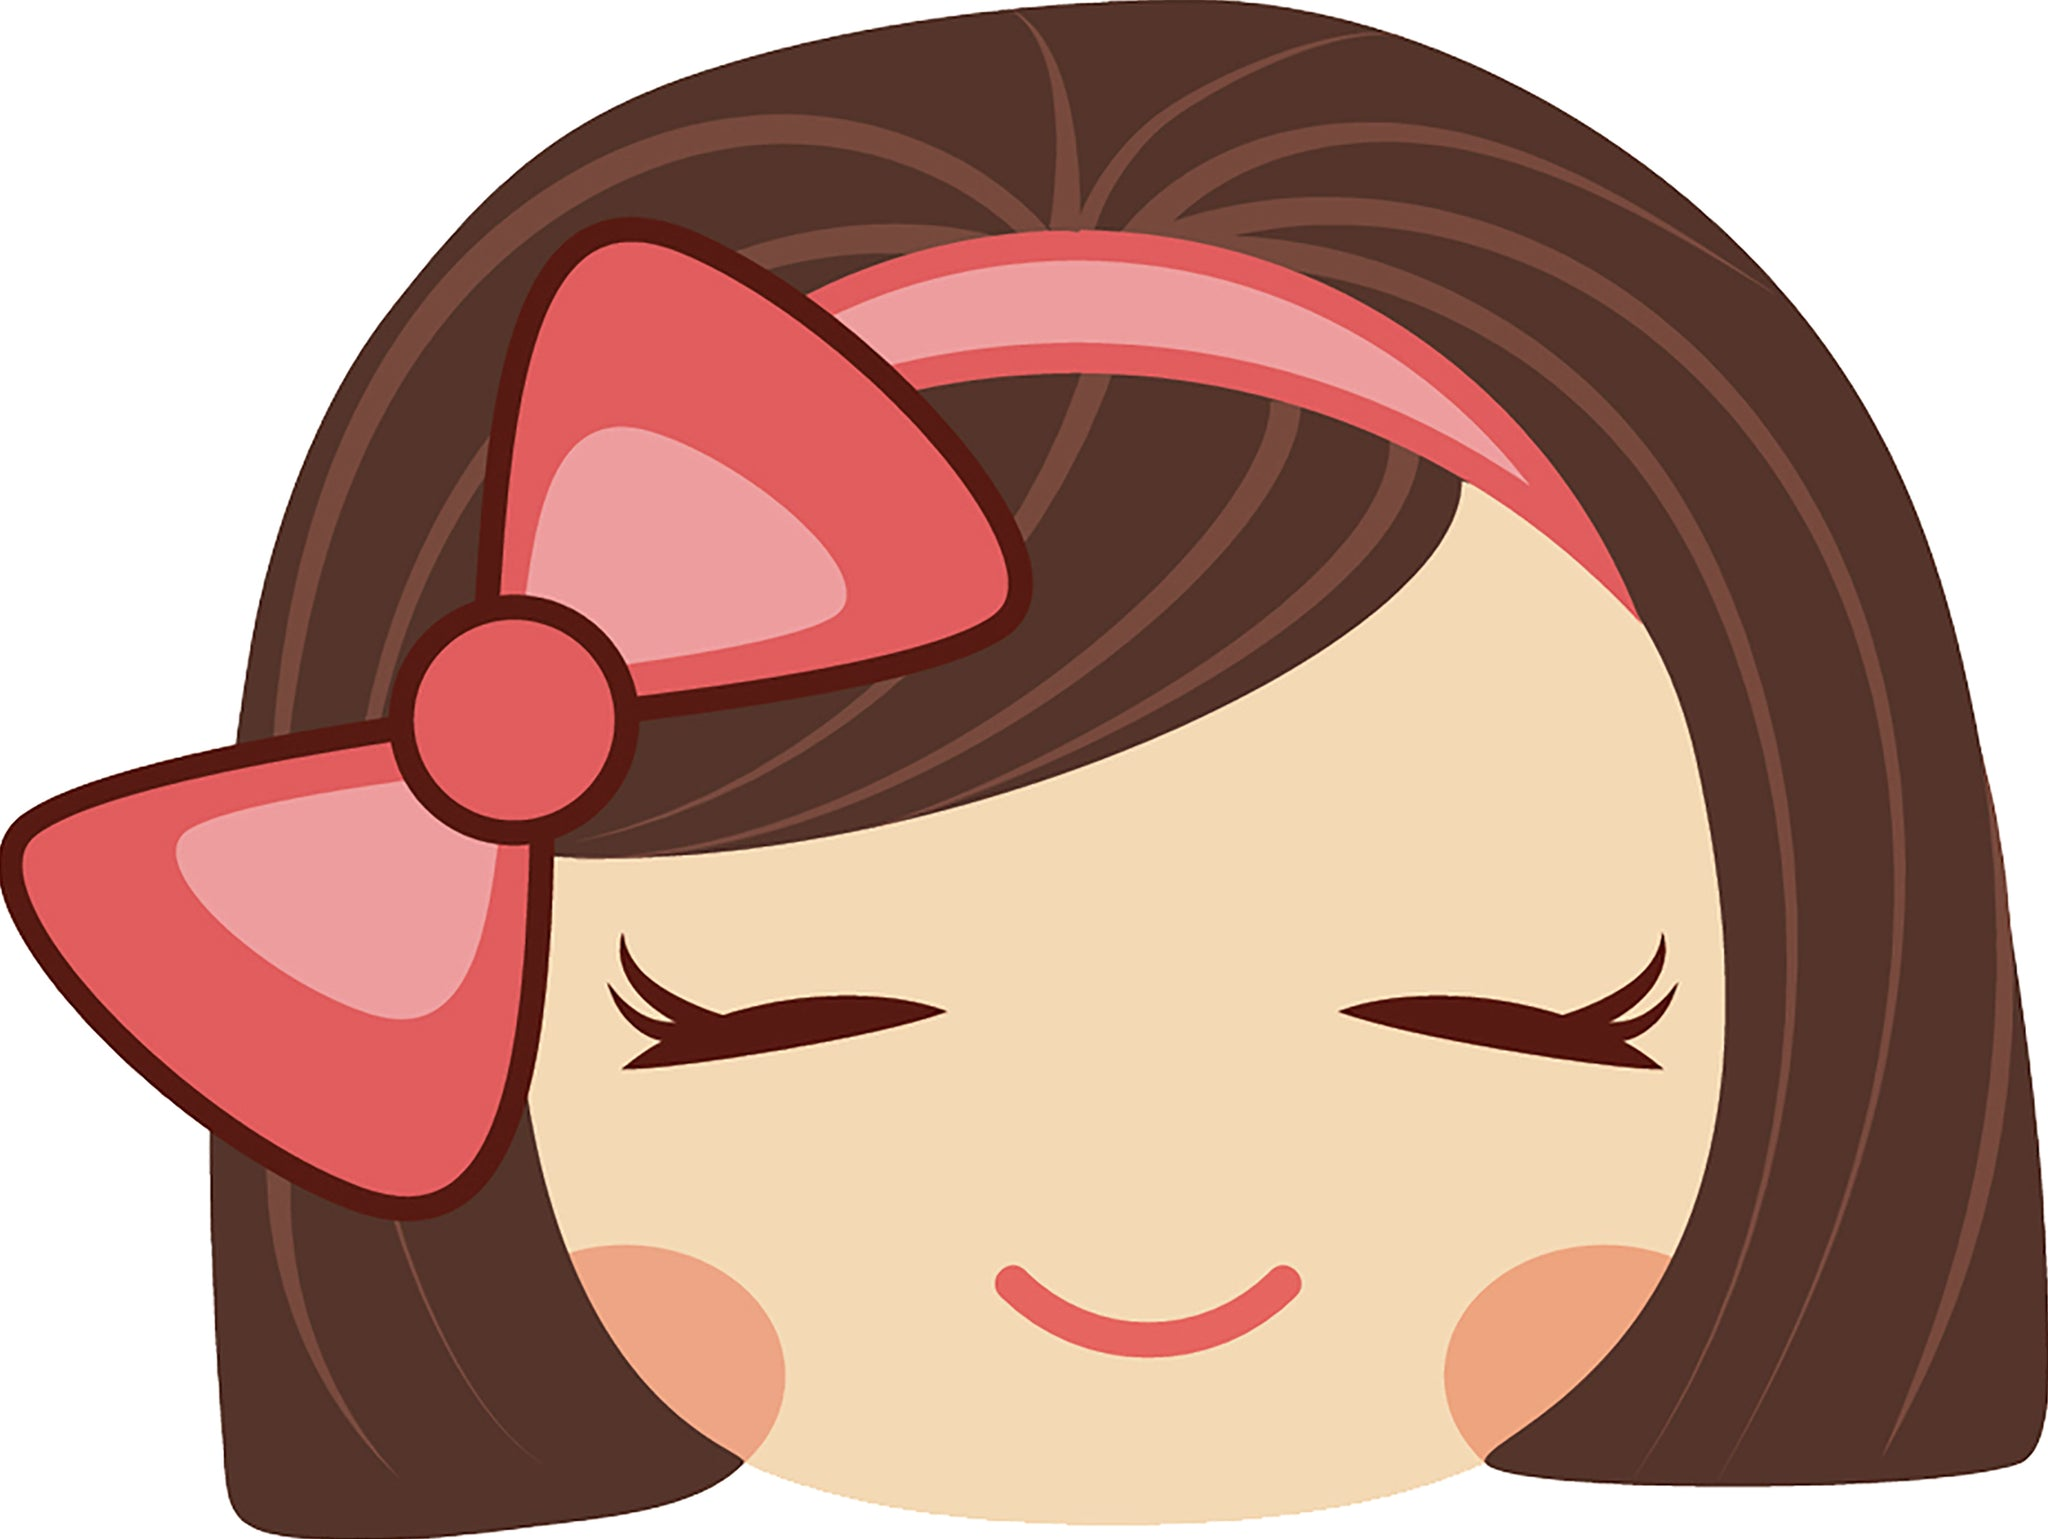 Sweet Little Kawaii School Girl with Pink Bow Emoji #2 Vinyl Decal Sticker